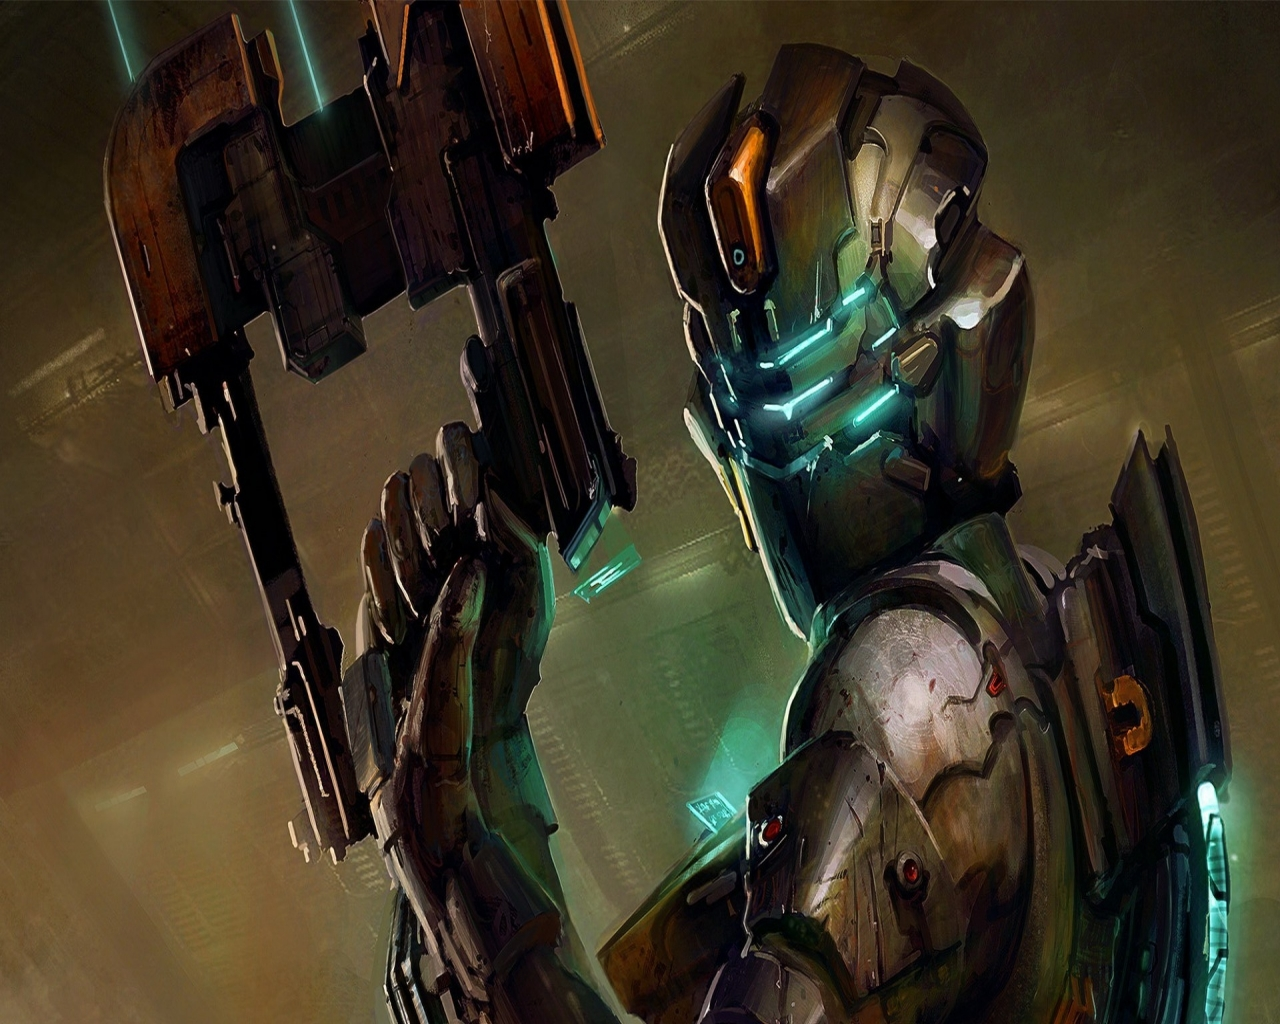 Games Wallpapers Dead Space 2 5638 1920x1080 pixel Exotic Wallpaper 1280x1024